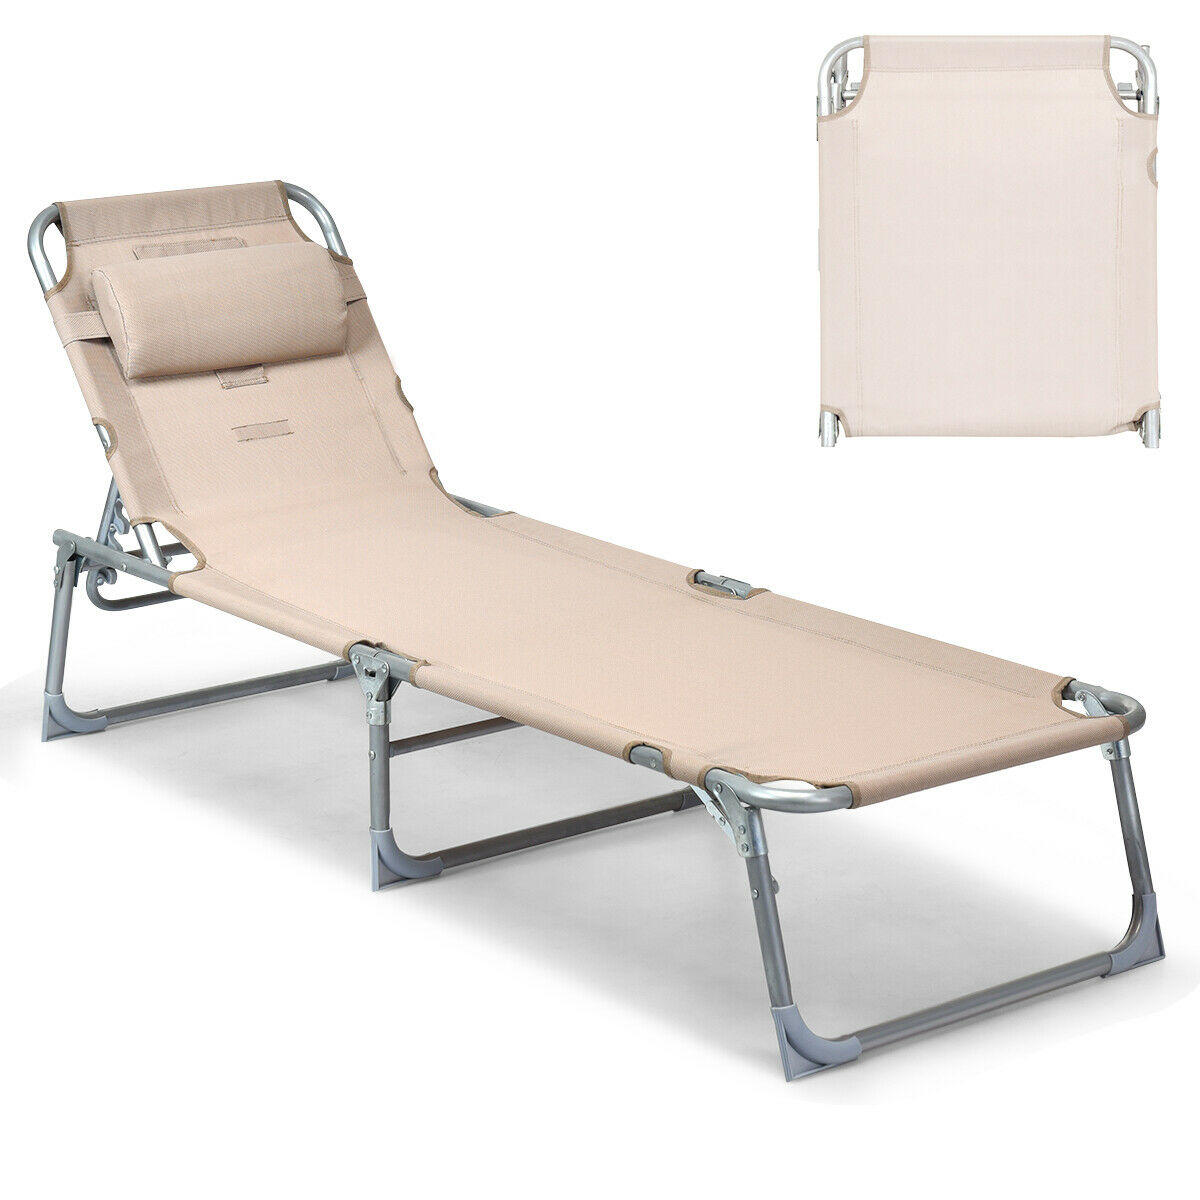 - Gymax Adjustable Pool Chaise Lounge Chair Bench Recliner Beach